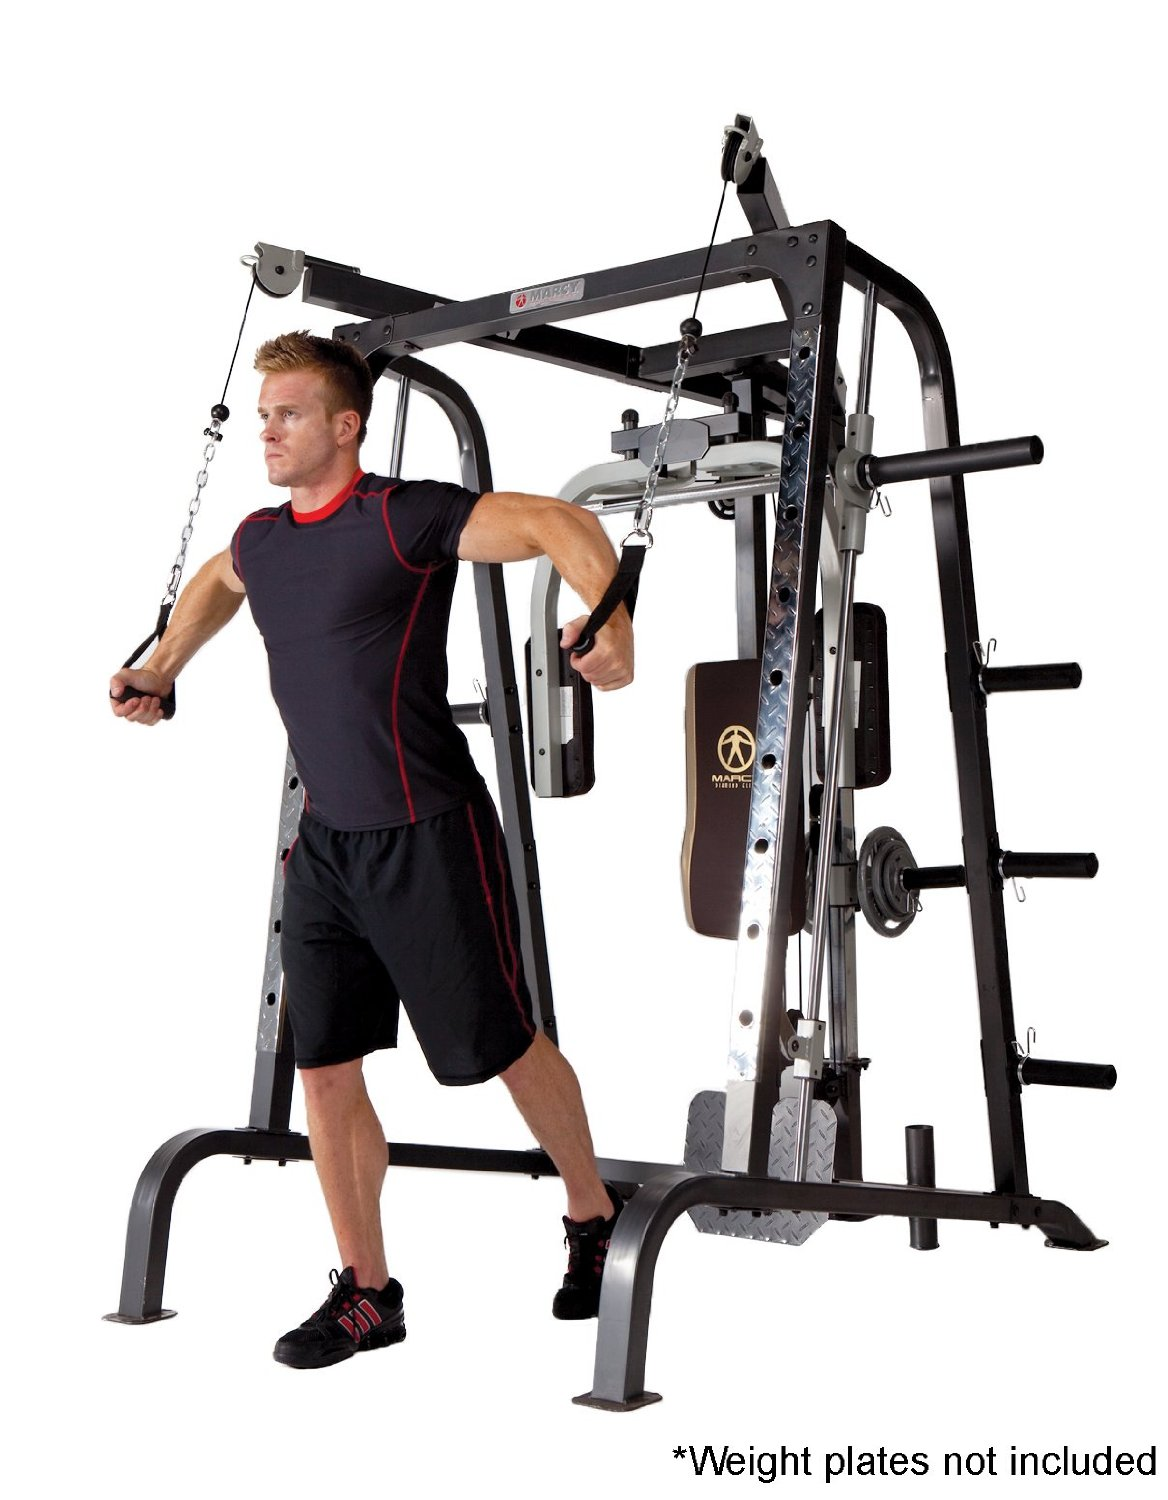 Best Home Gym | Top 10 All In One Workout Machines For all Exercises